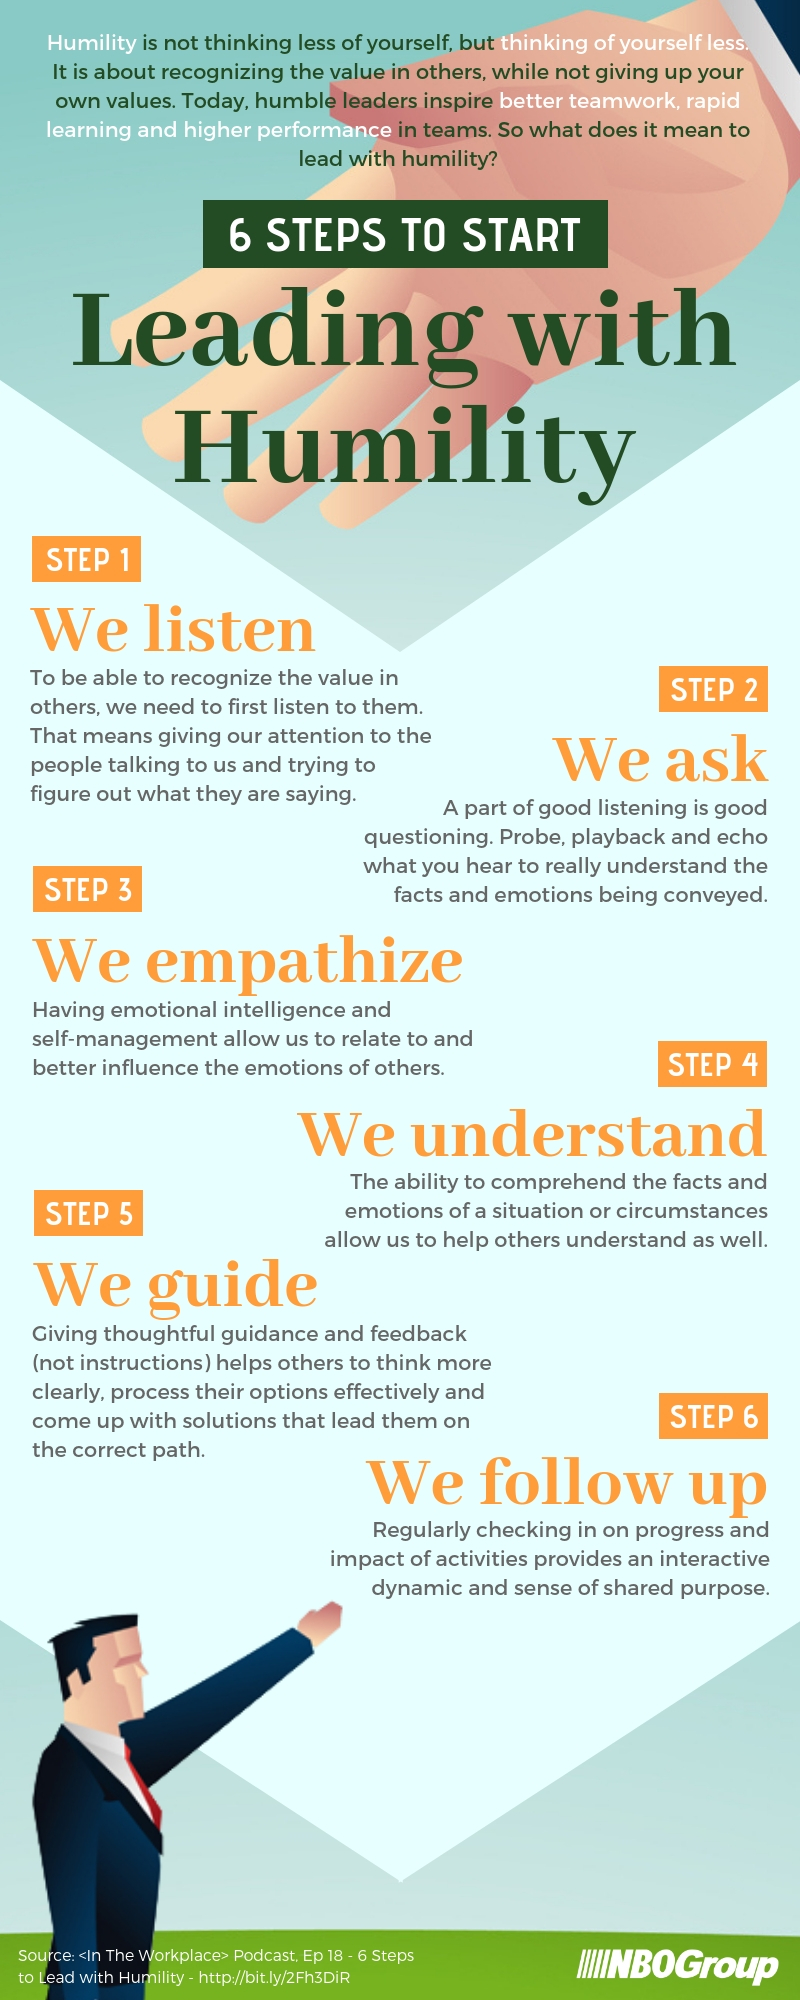 6 Steps to Start Leading with Humility [Infographic]